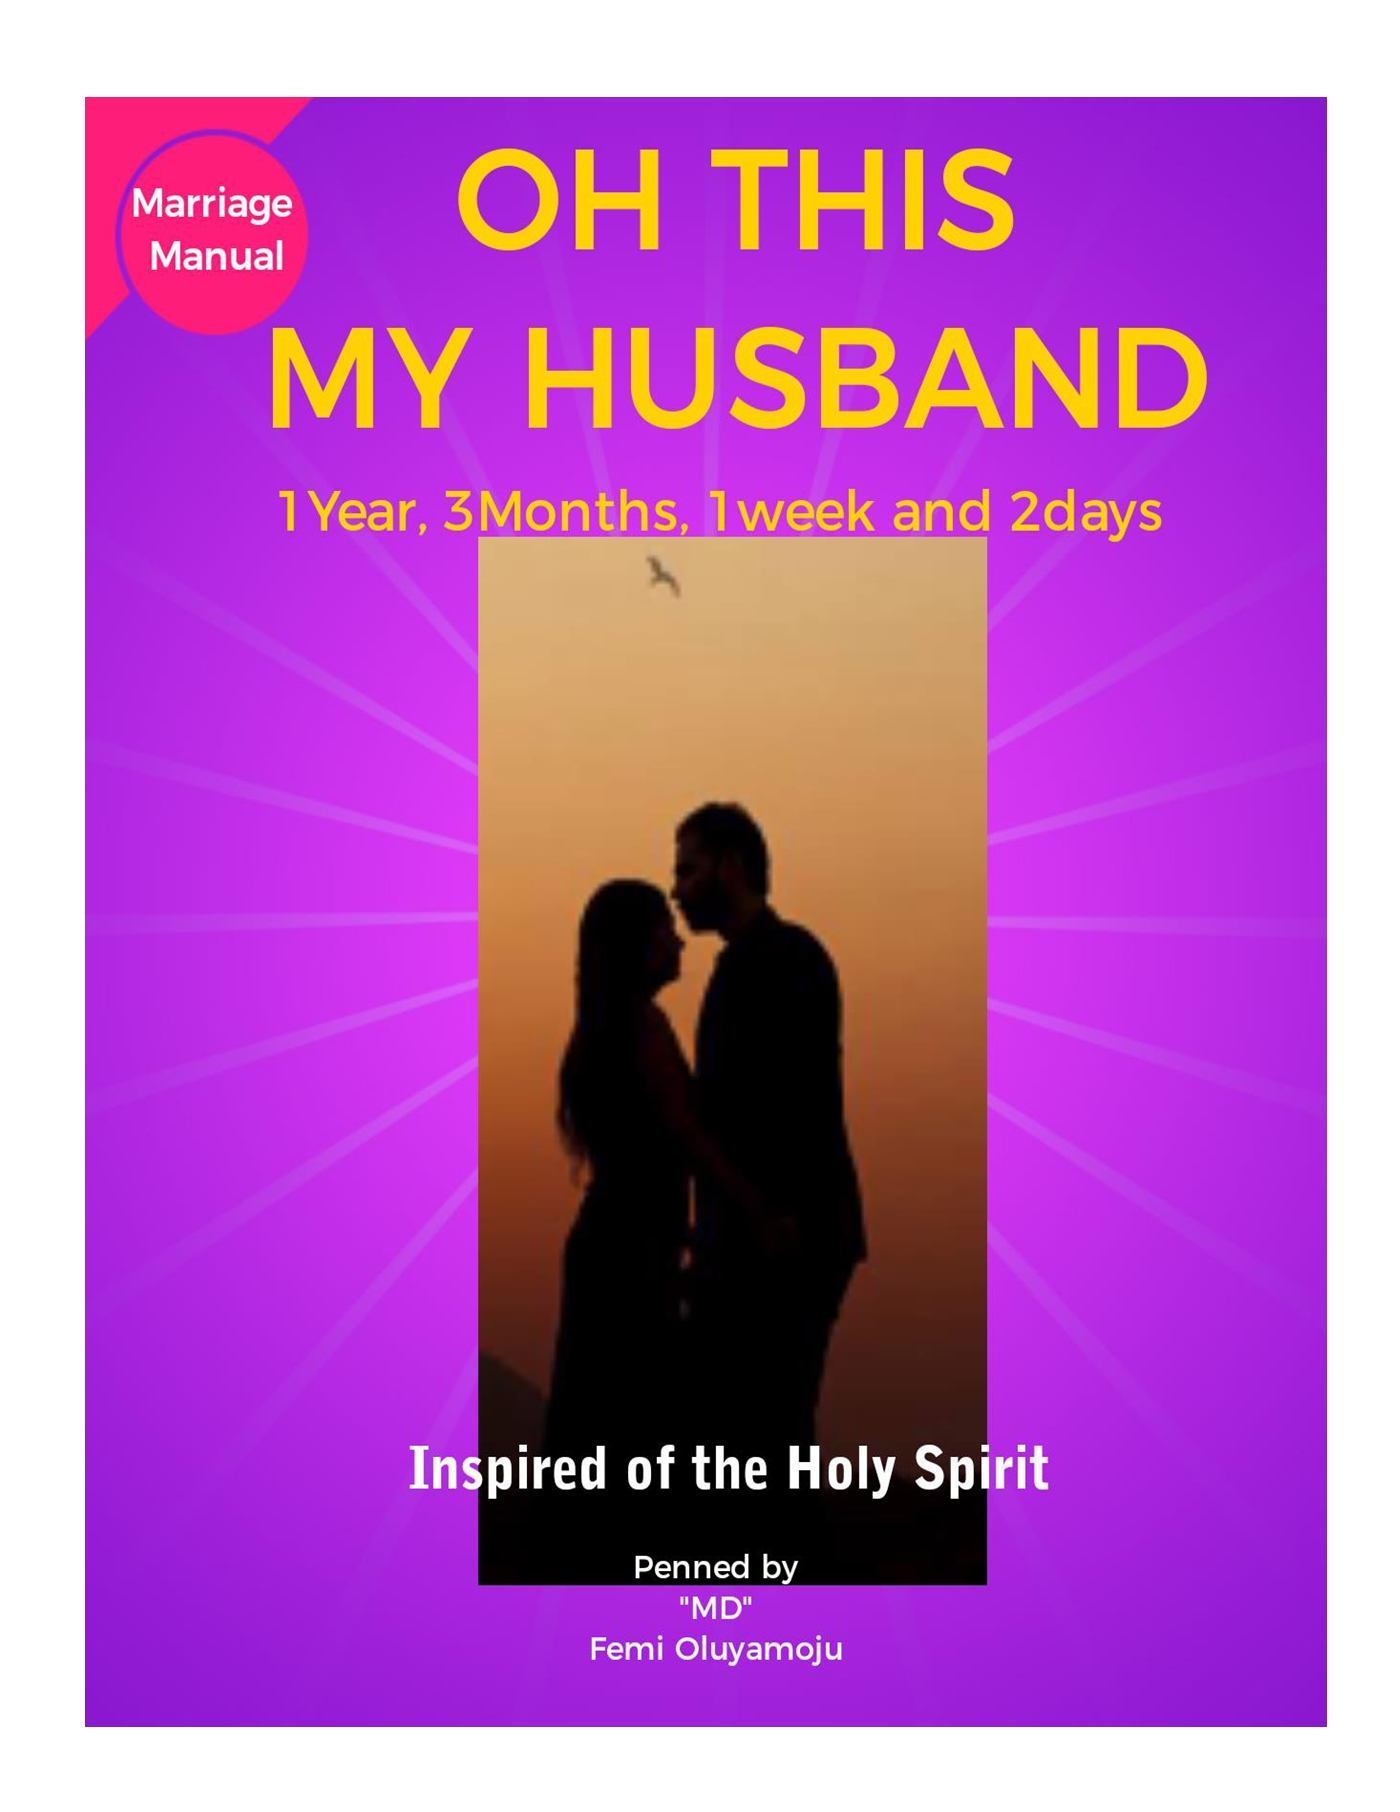 Smashwords – Oh This my husband  Femi Oluyamoju – a book by